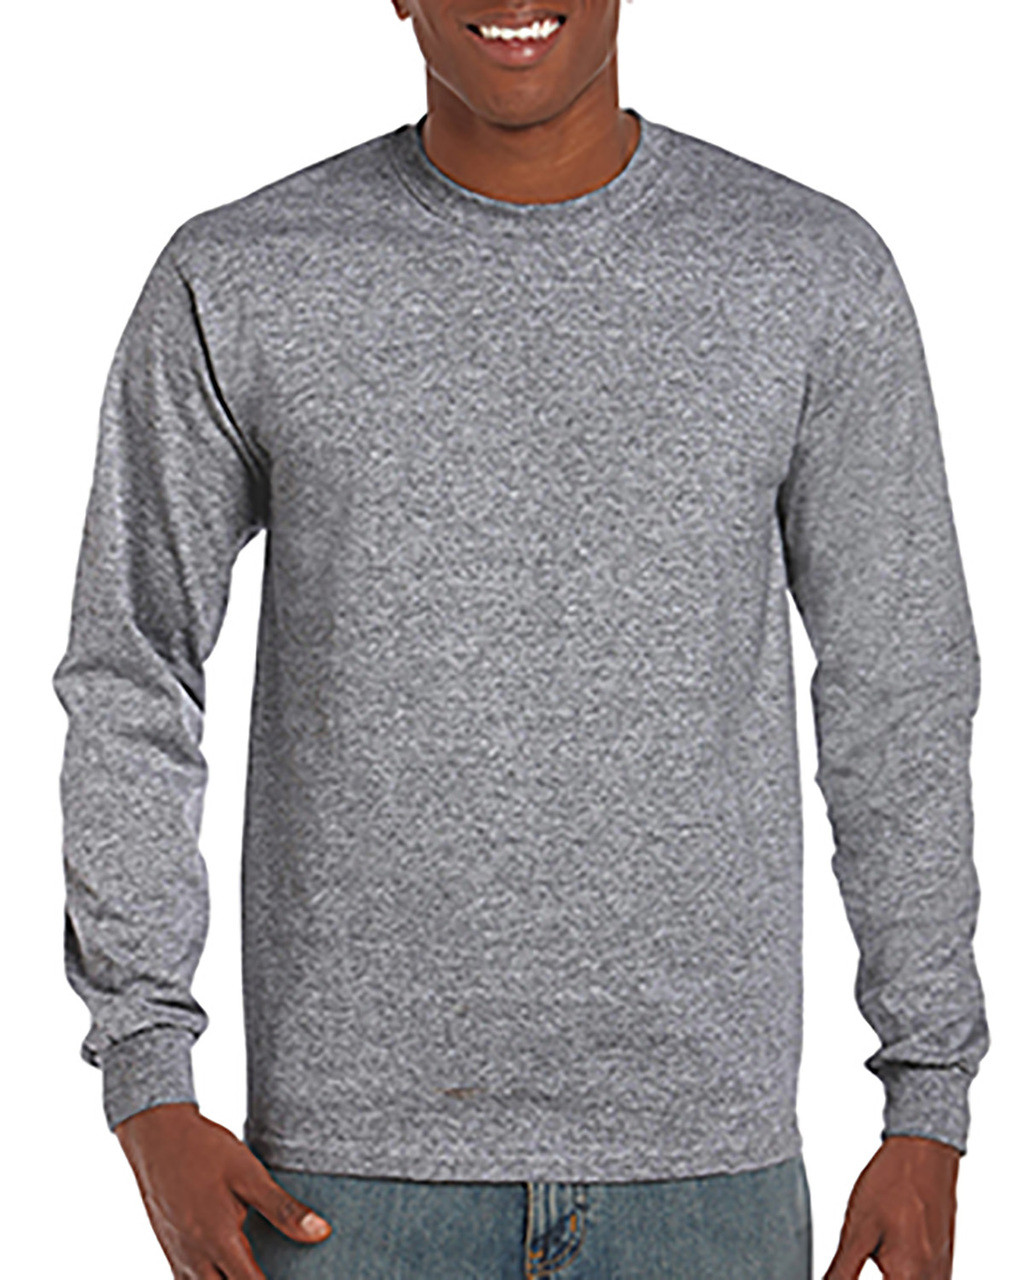 Graphite Heather - G840 DryBlend 50/50 Long Sleeve T-Shirt